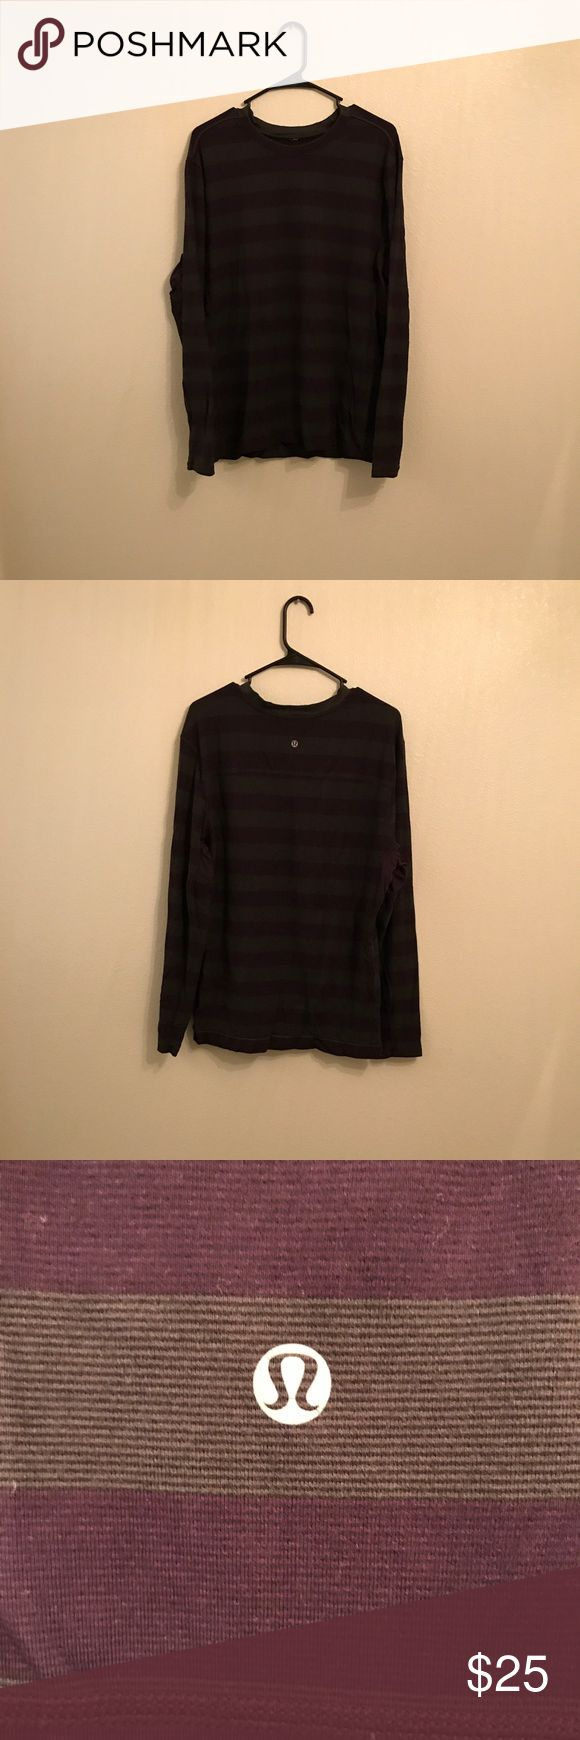 Lululemon Athletica Men's Athletic Top XXL Lululemon Athletica Men's Purple Gray Long Sleeve Athletic Top Size XXL Used in Good Condition lululemon athletica Shirts Tees - Long Sleeve